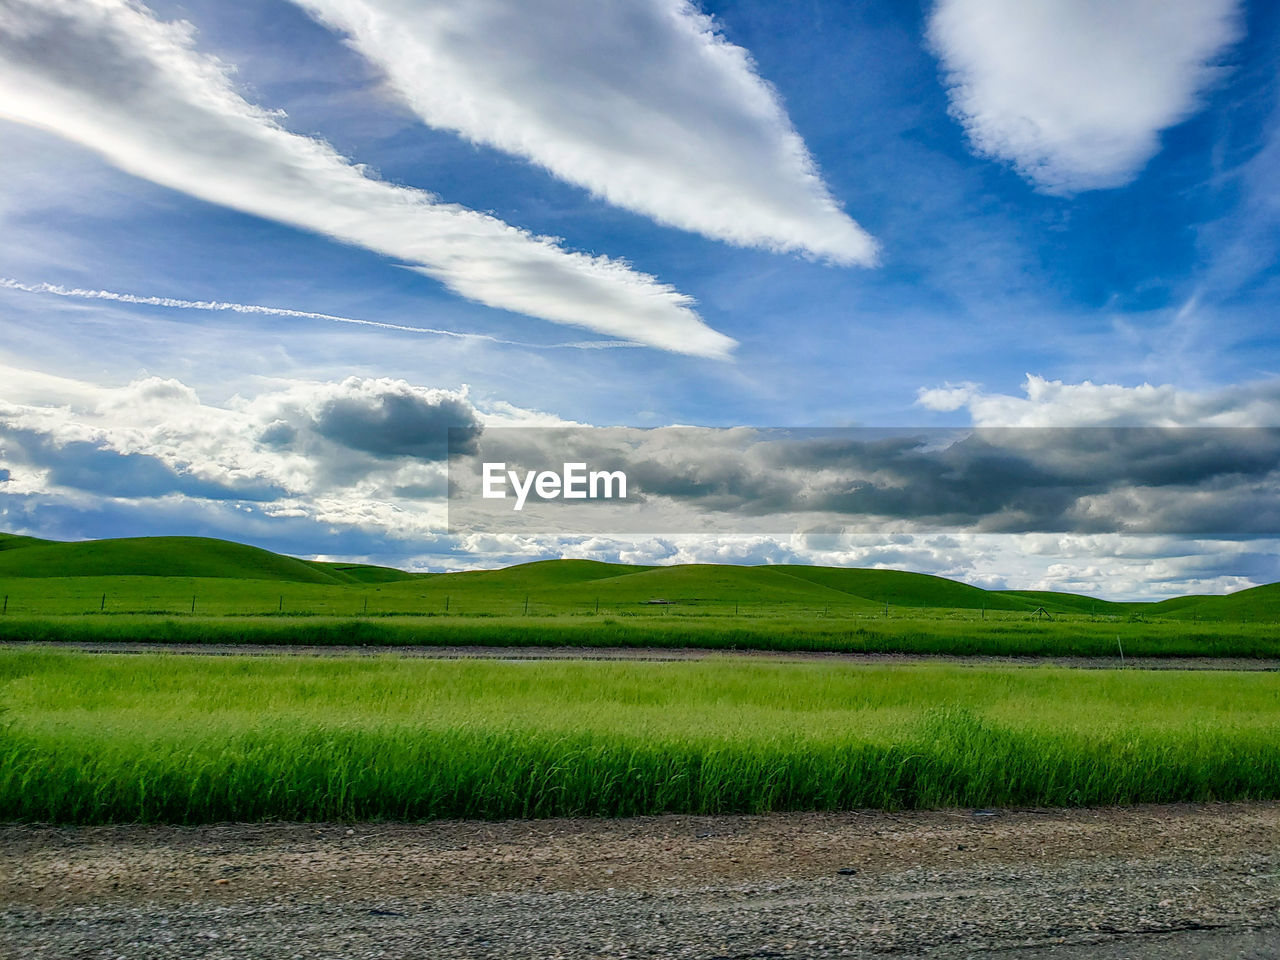 cloud - sky, scenics - nature, tranquil scene, landscape, sky, beauty in nature, environment, tranquility, land, green color, grass, field, day, nature, plant, no people, rural scene, non-urban scene, idyllic, agriculture, outdoors